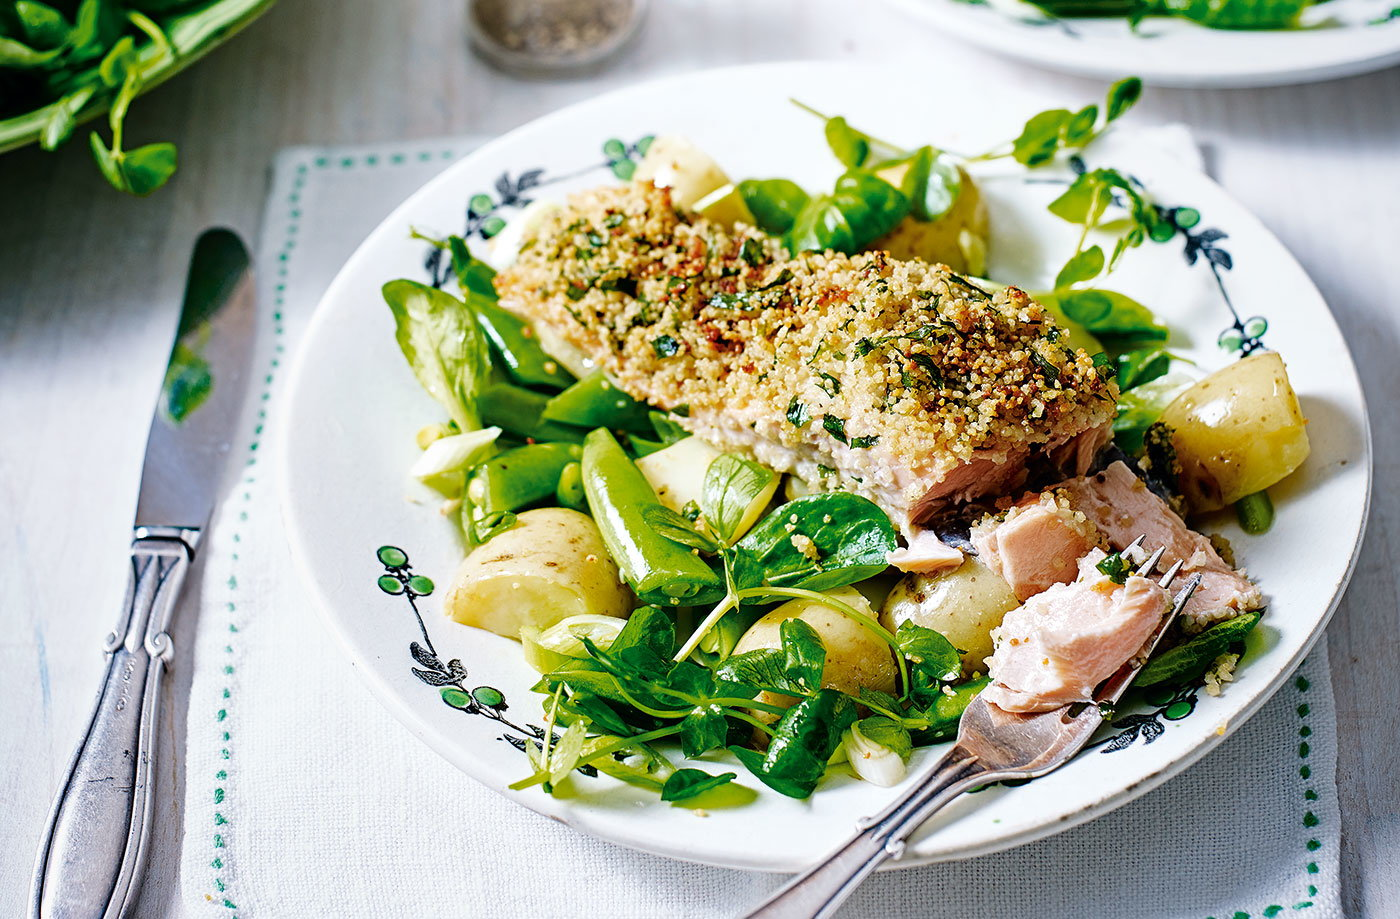 Couscous-crusted salmon with pea and potato salad